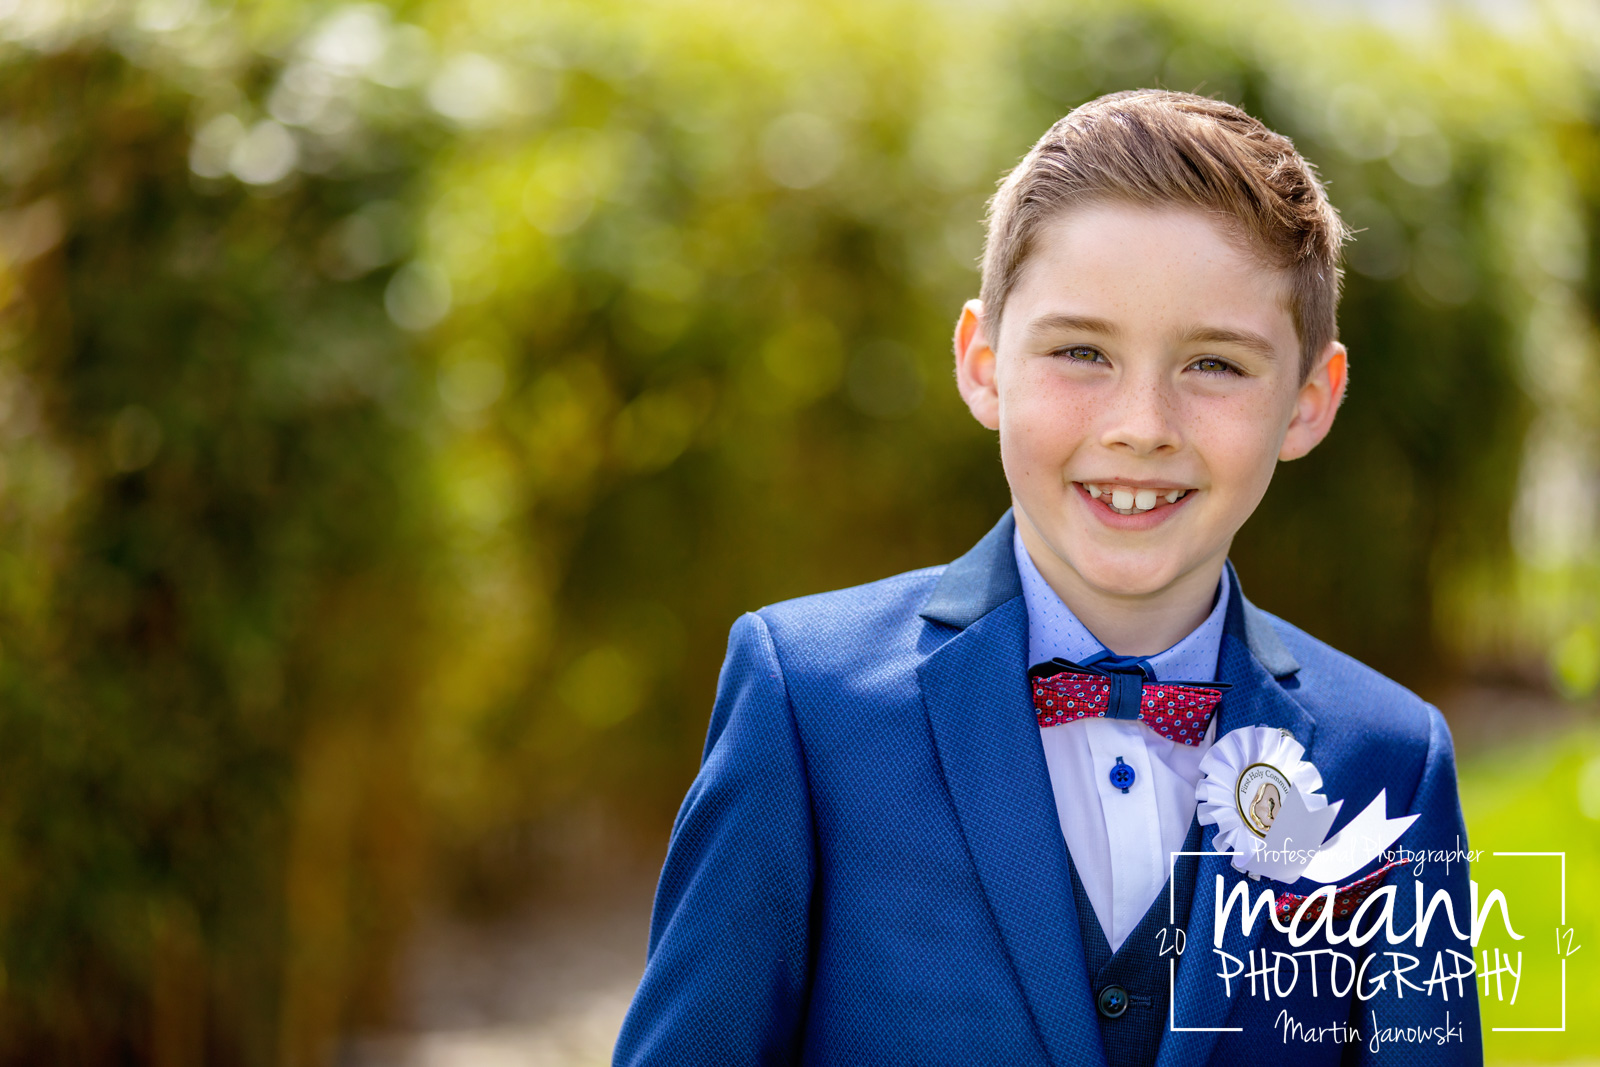 communion photography photography studio